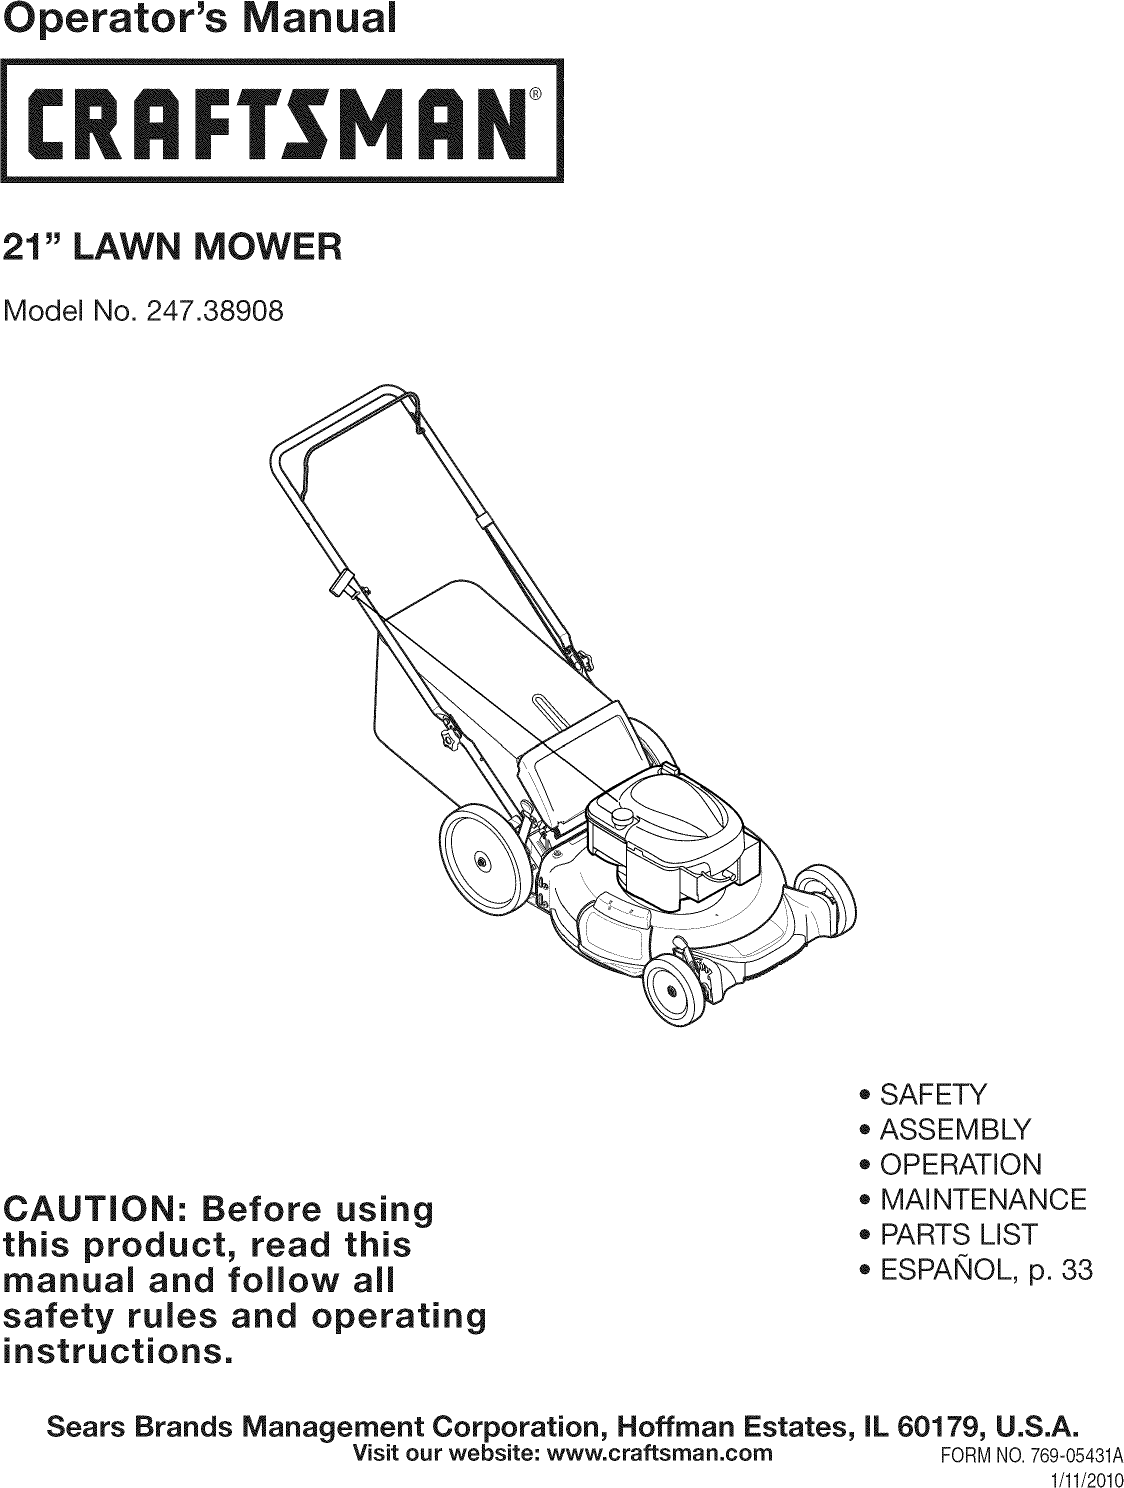 craftsman lawn mower user manual